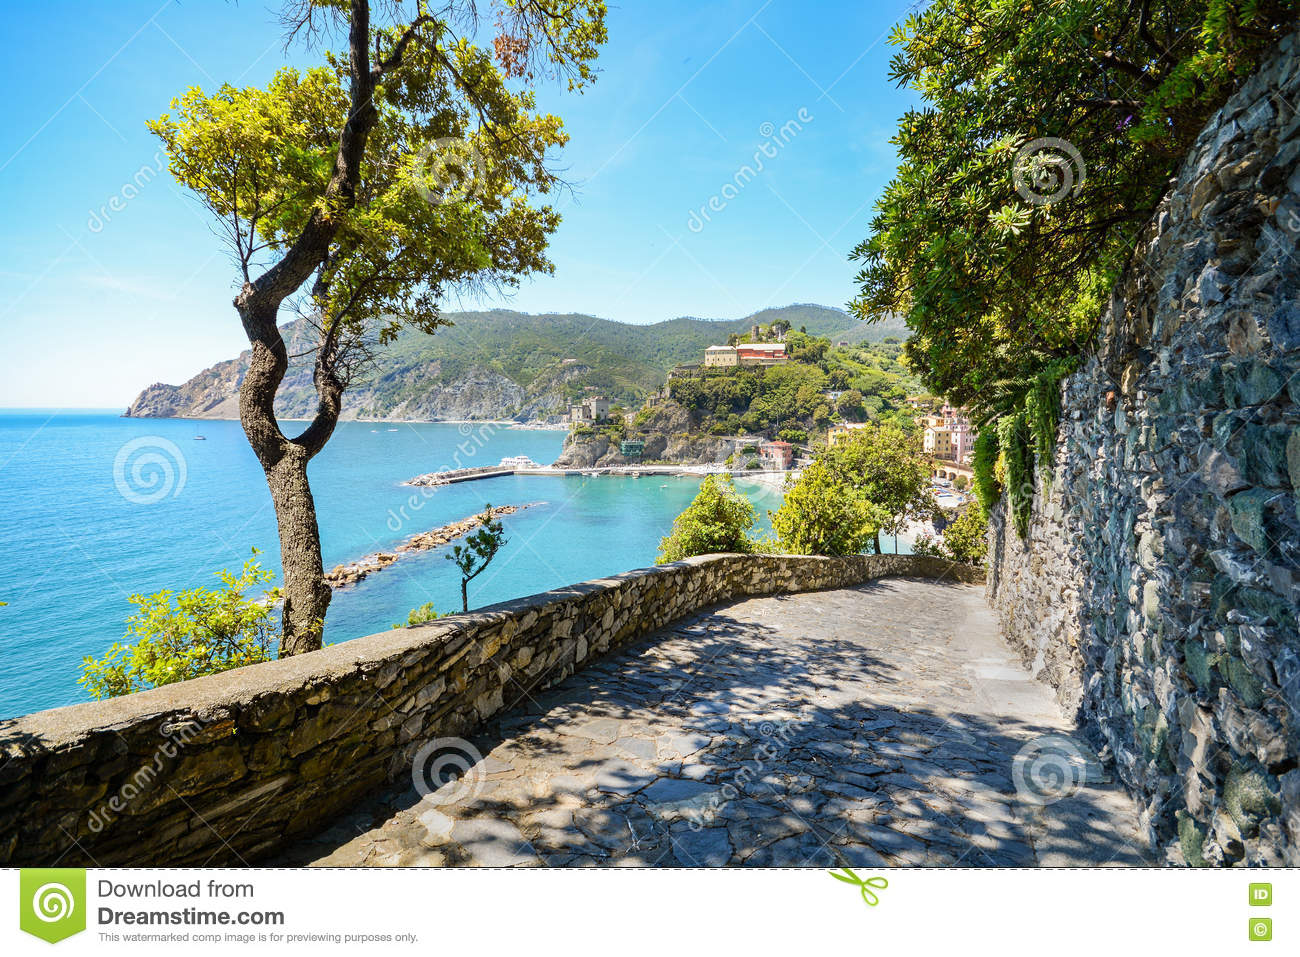 Cinque Terre: Hiking Trail To Monterosso Al Mare In Early Summer.